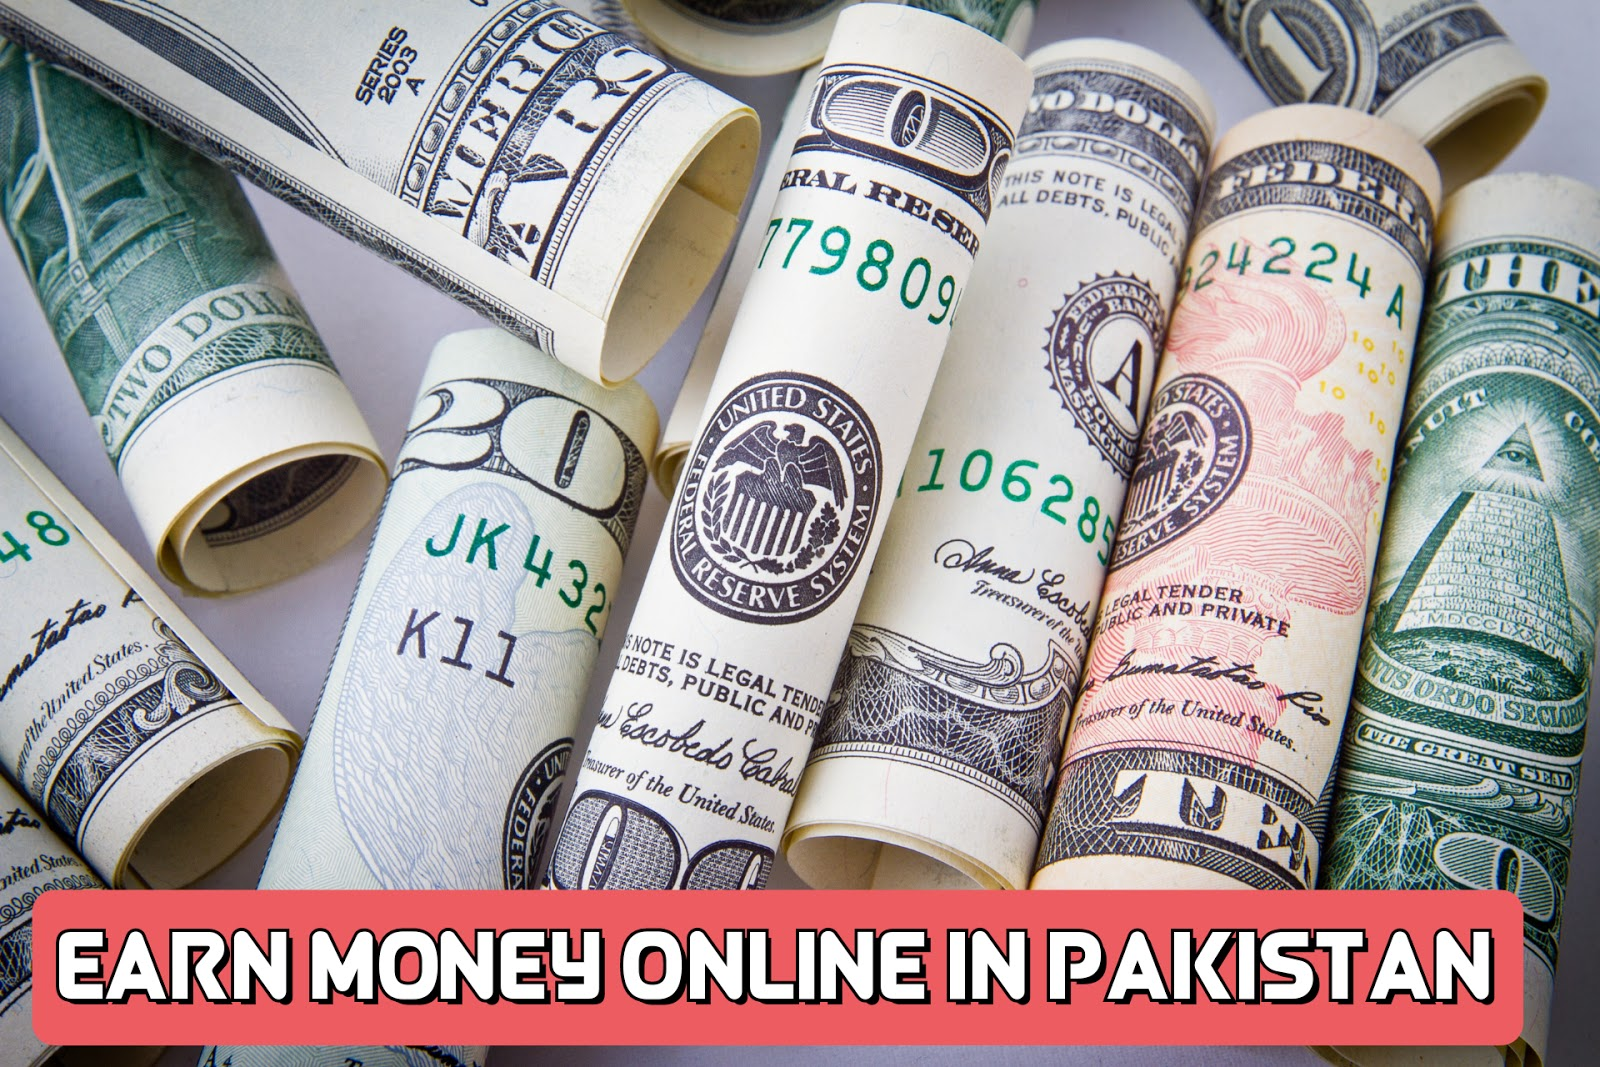 How to earn money online in pakistan, make money online in pakistan, earn rs. 30,000 per month in pakistan